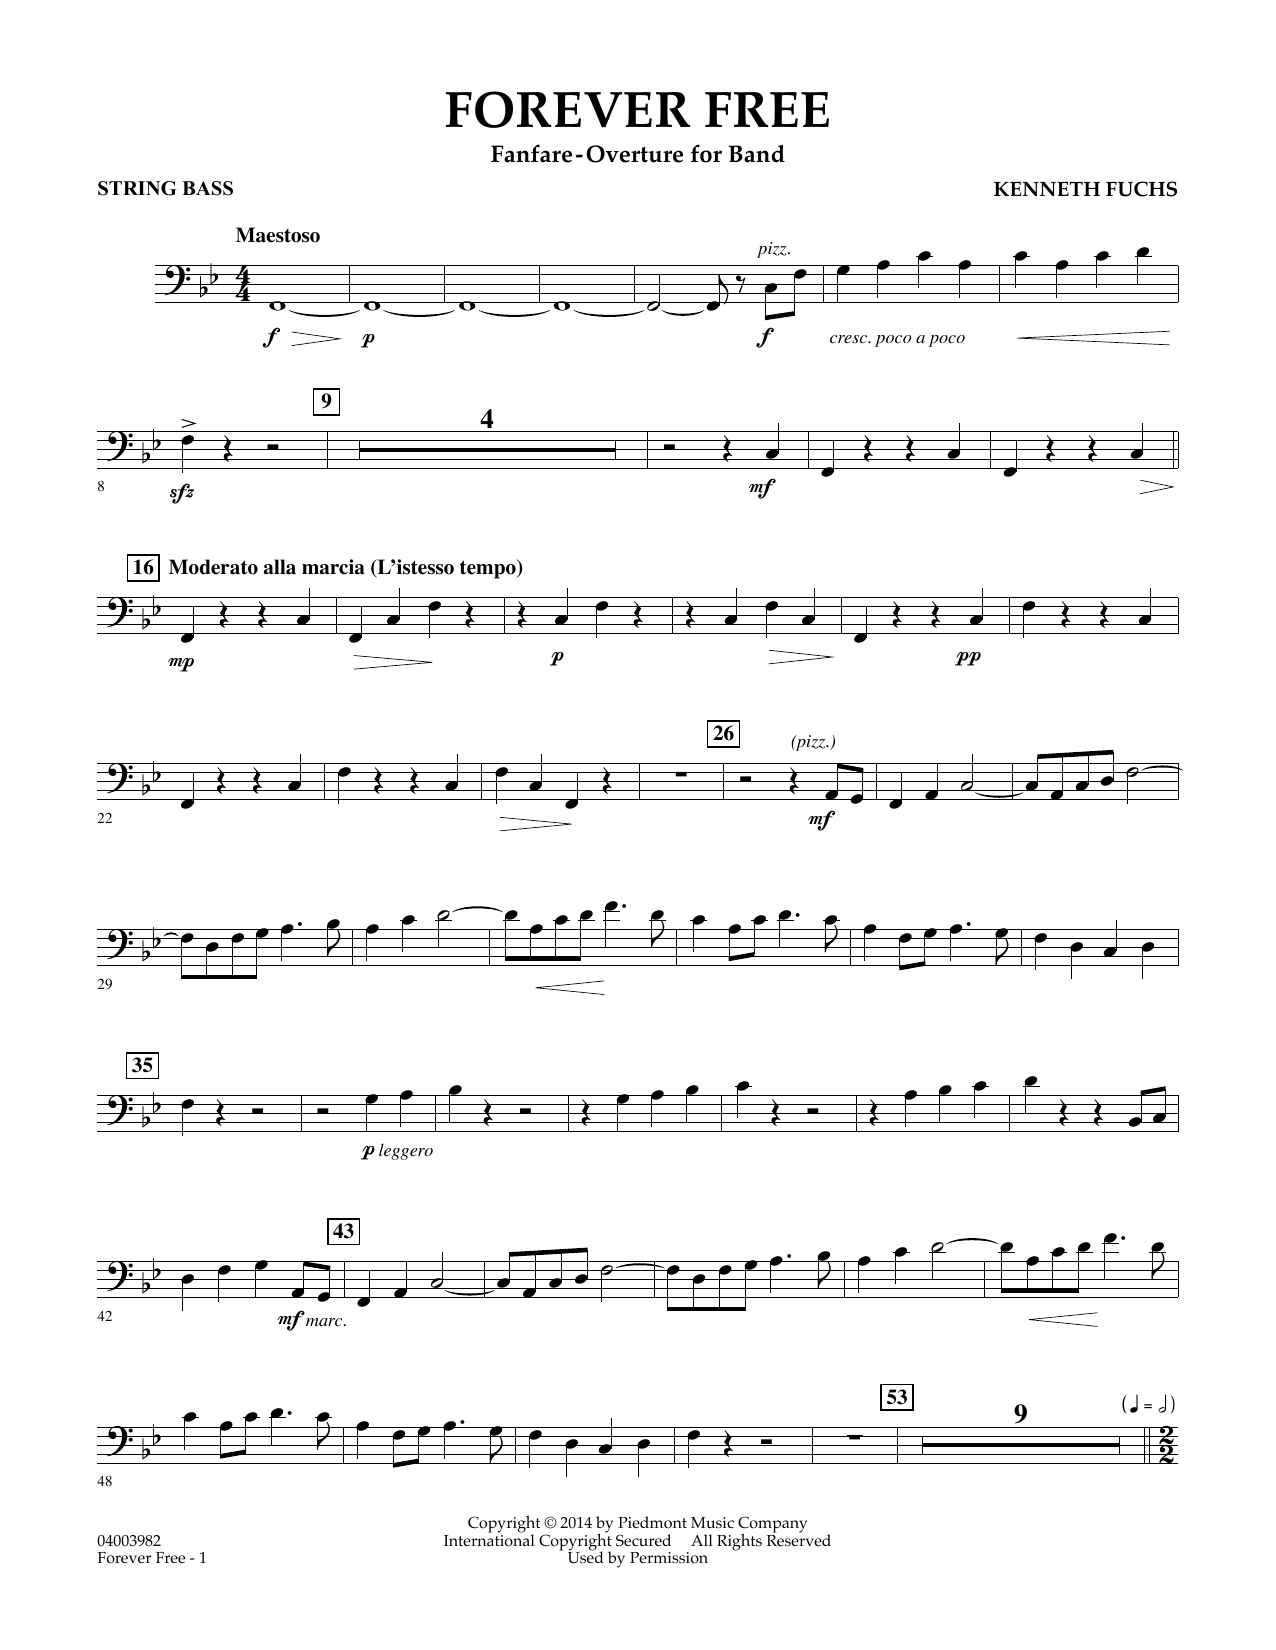 Kenneth Fuchs Forever Free - String Bass sheet music notes and chords. Download Printable PDF.